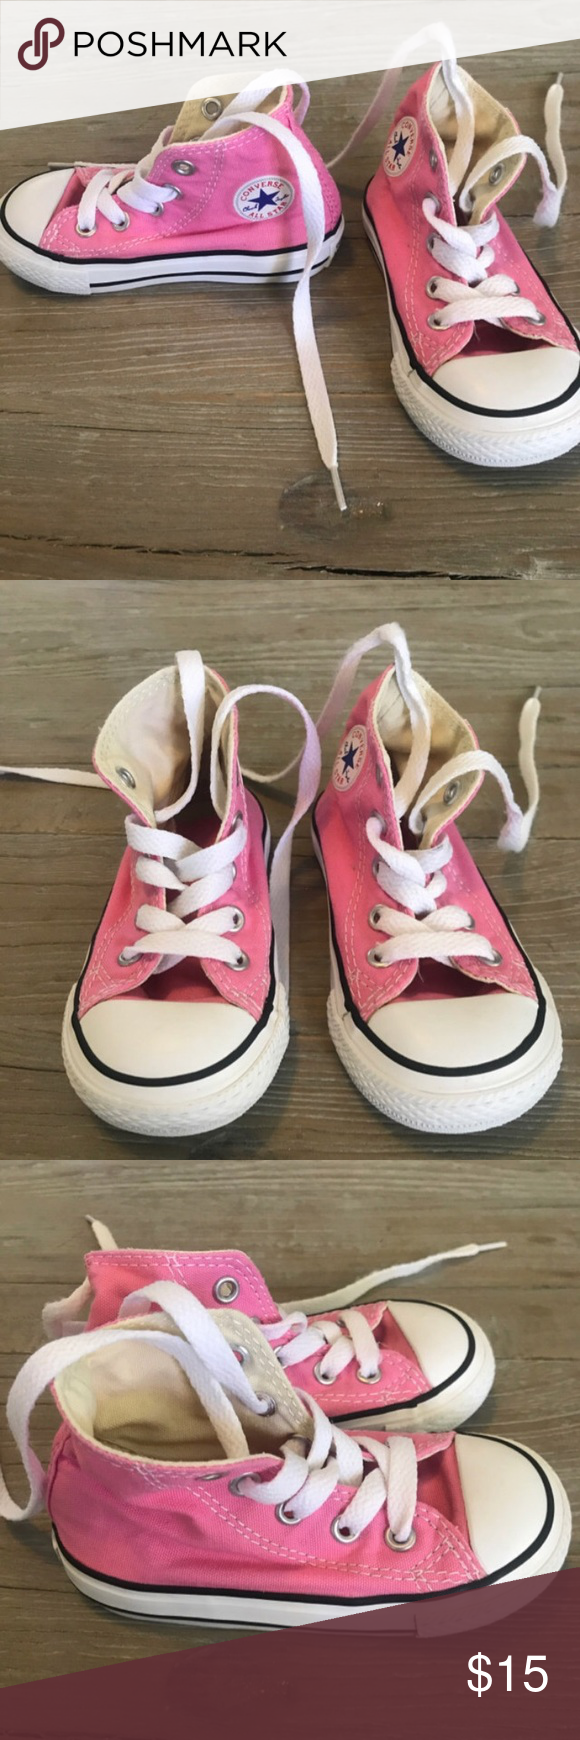 dfbef124bbde Size 6 Toddler Converse New